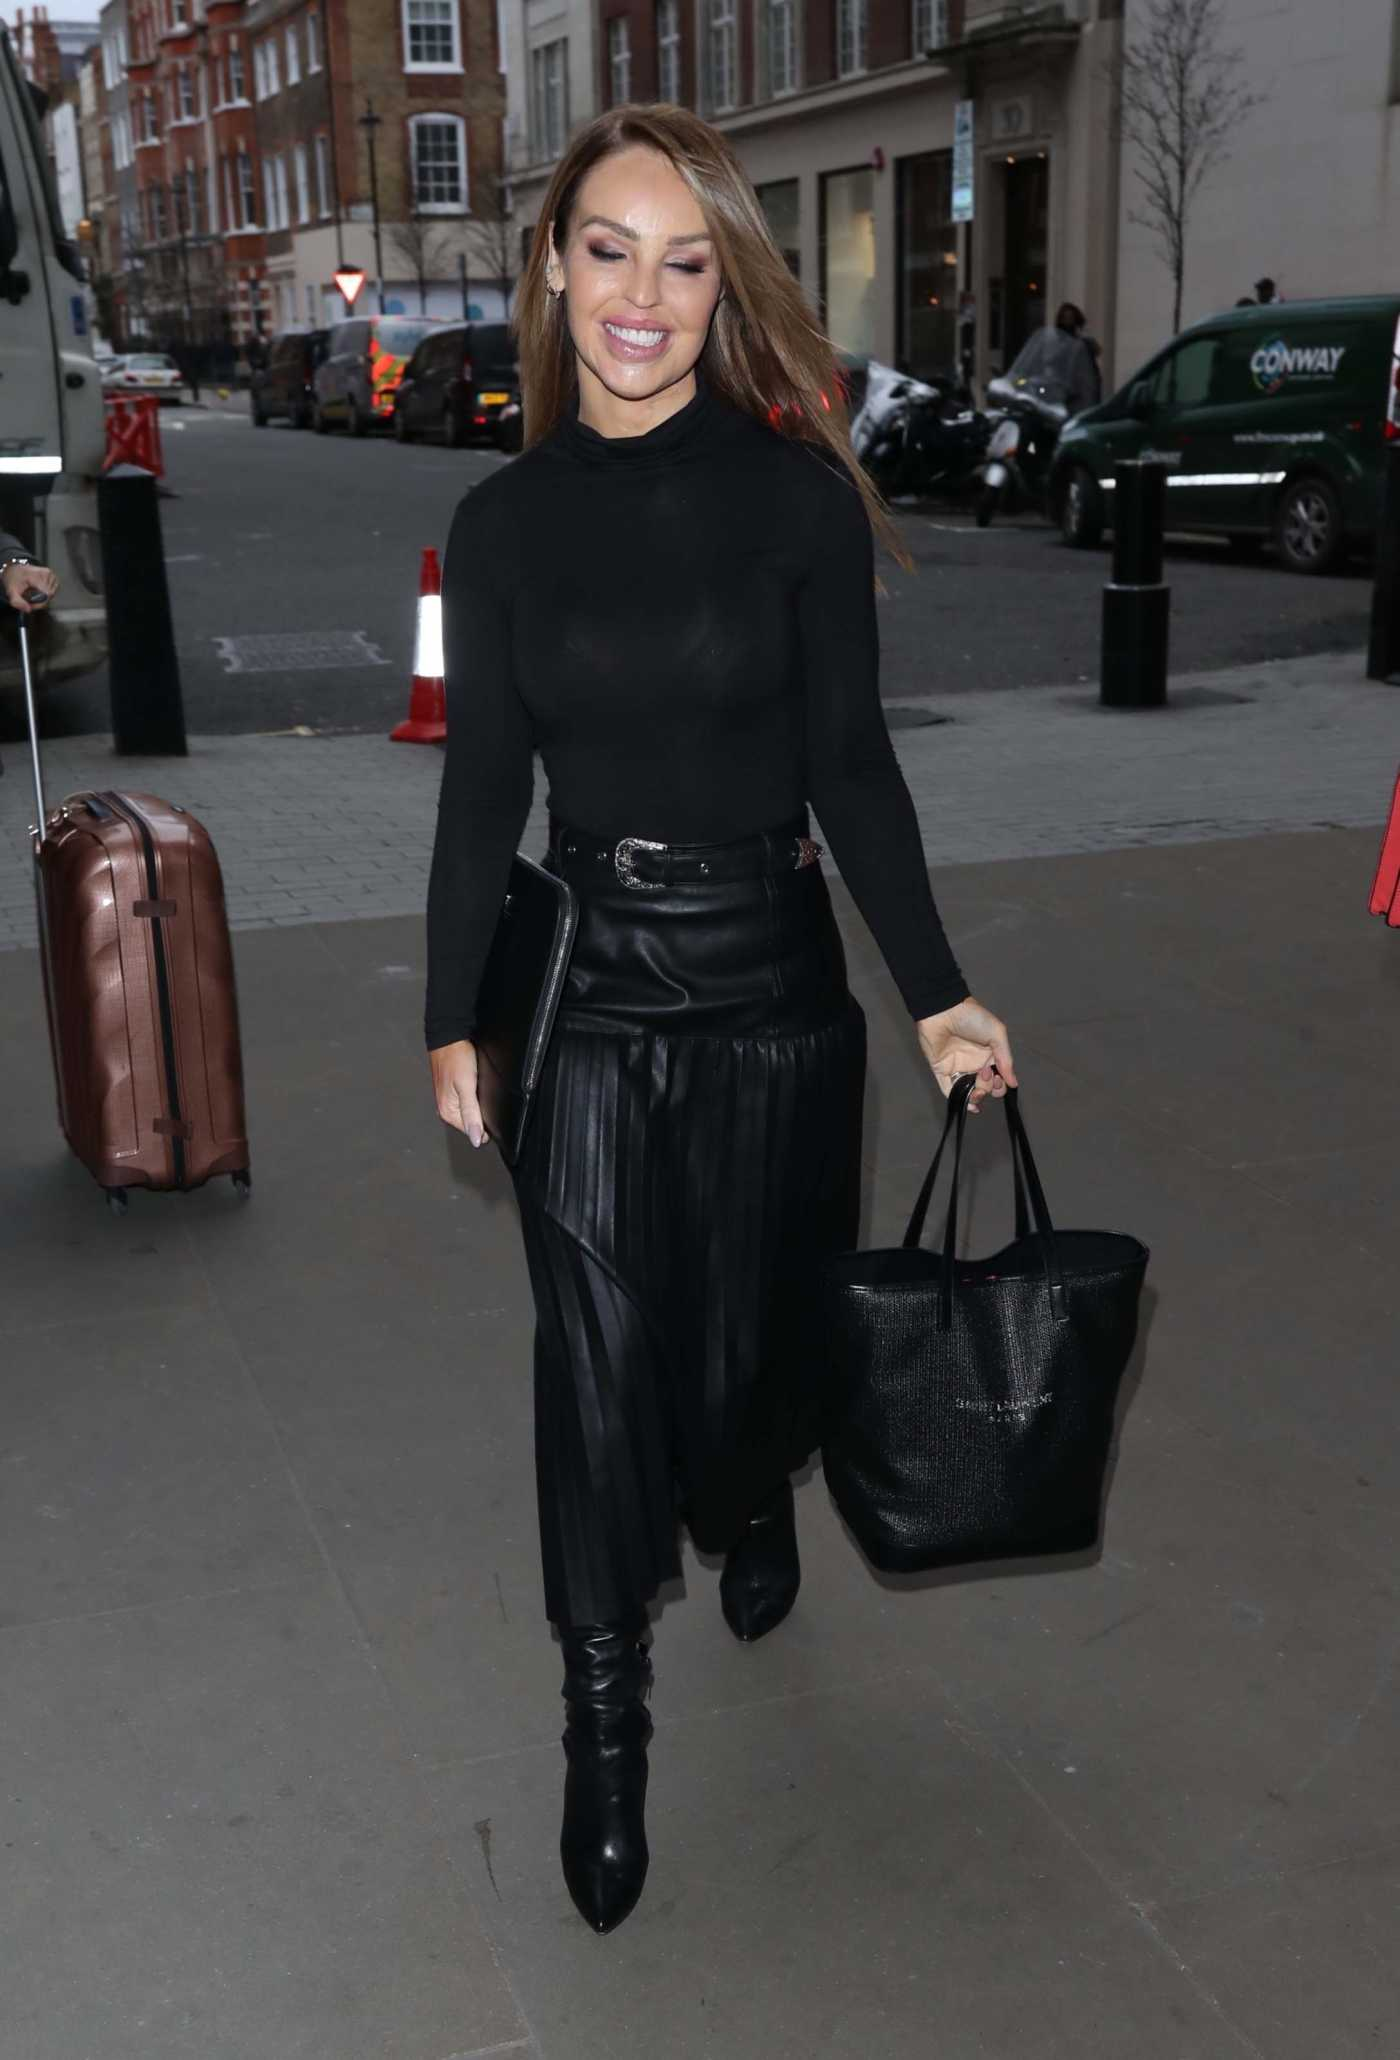 Katie Piper in a Black Leather Skirt Leaves the BBC Studios in London 02/11/2020